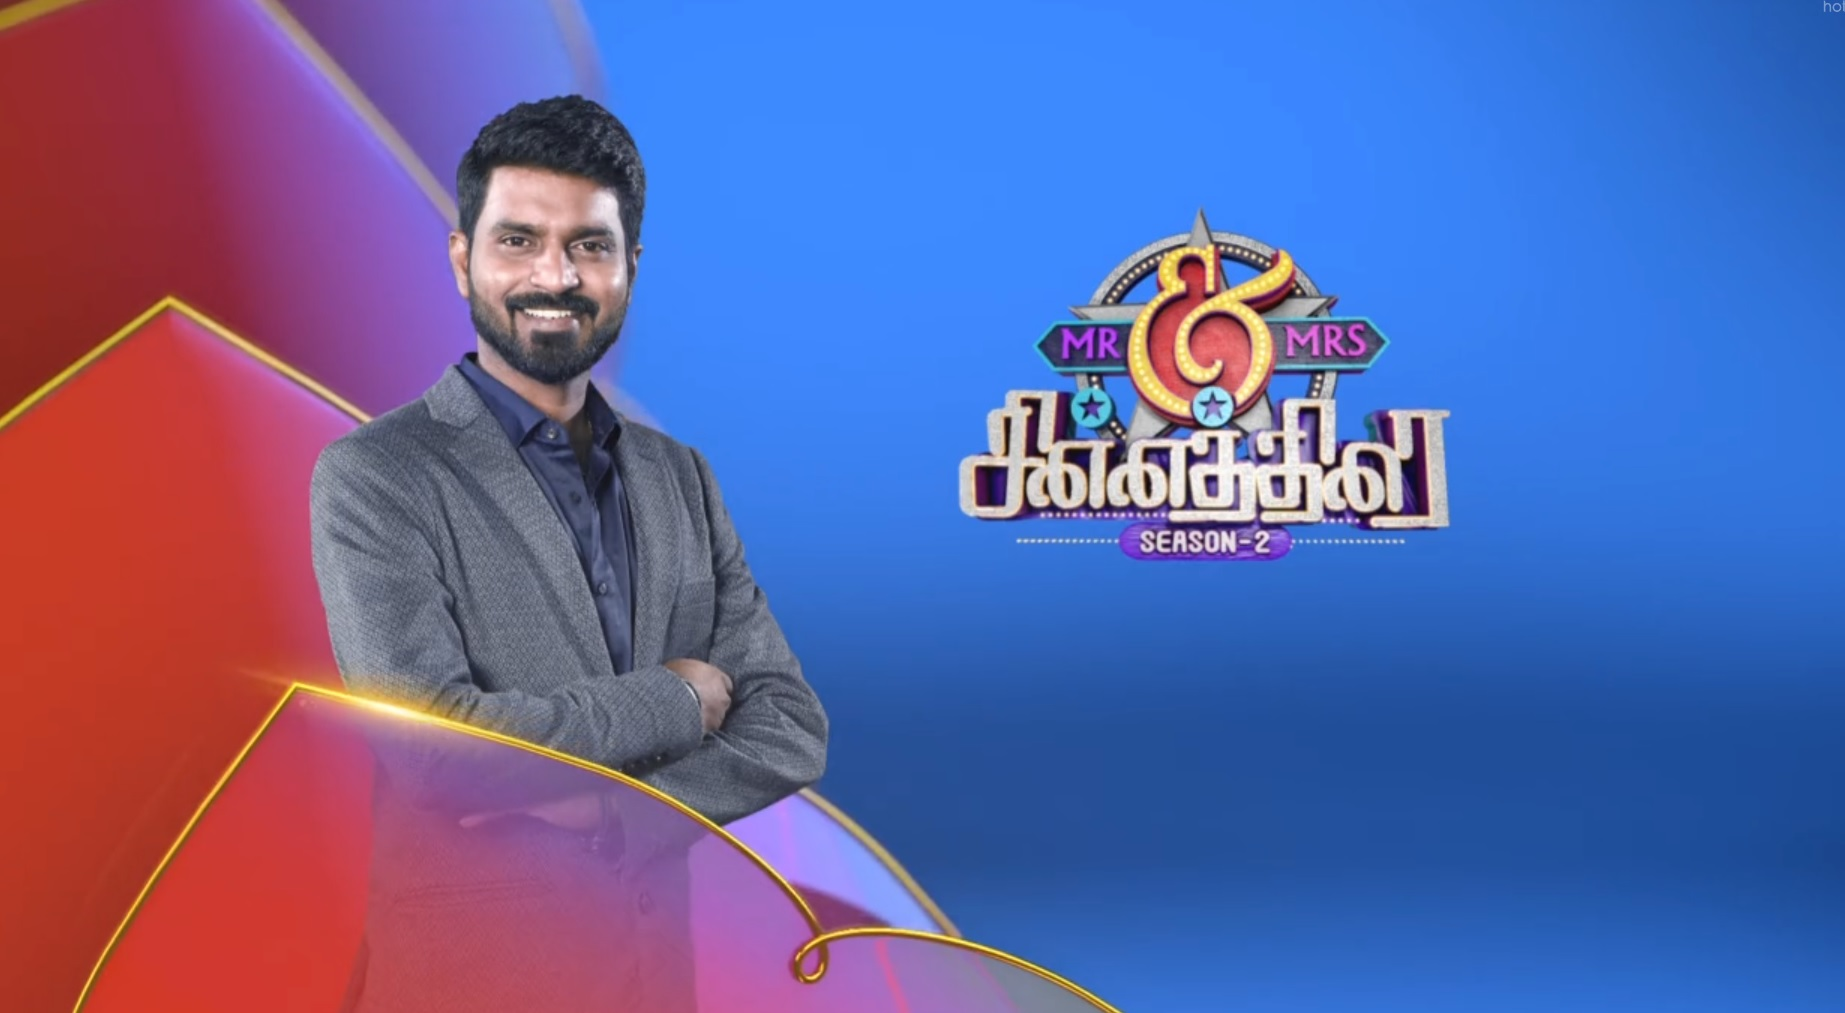 02-08-2020 - Mr & Mrs Chinnathirai 2- Vijay tv Shows